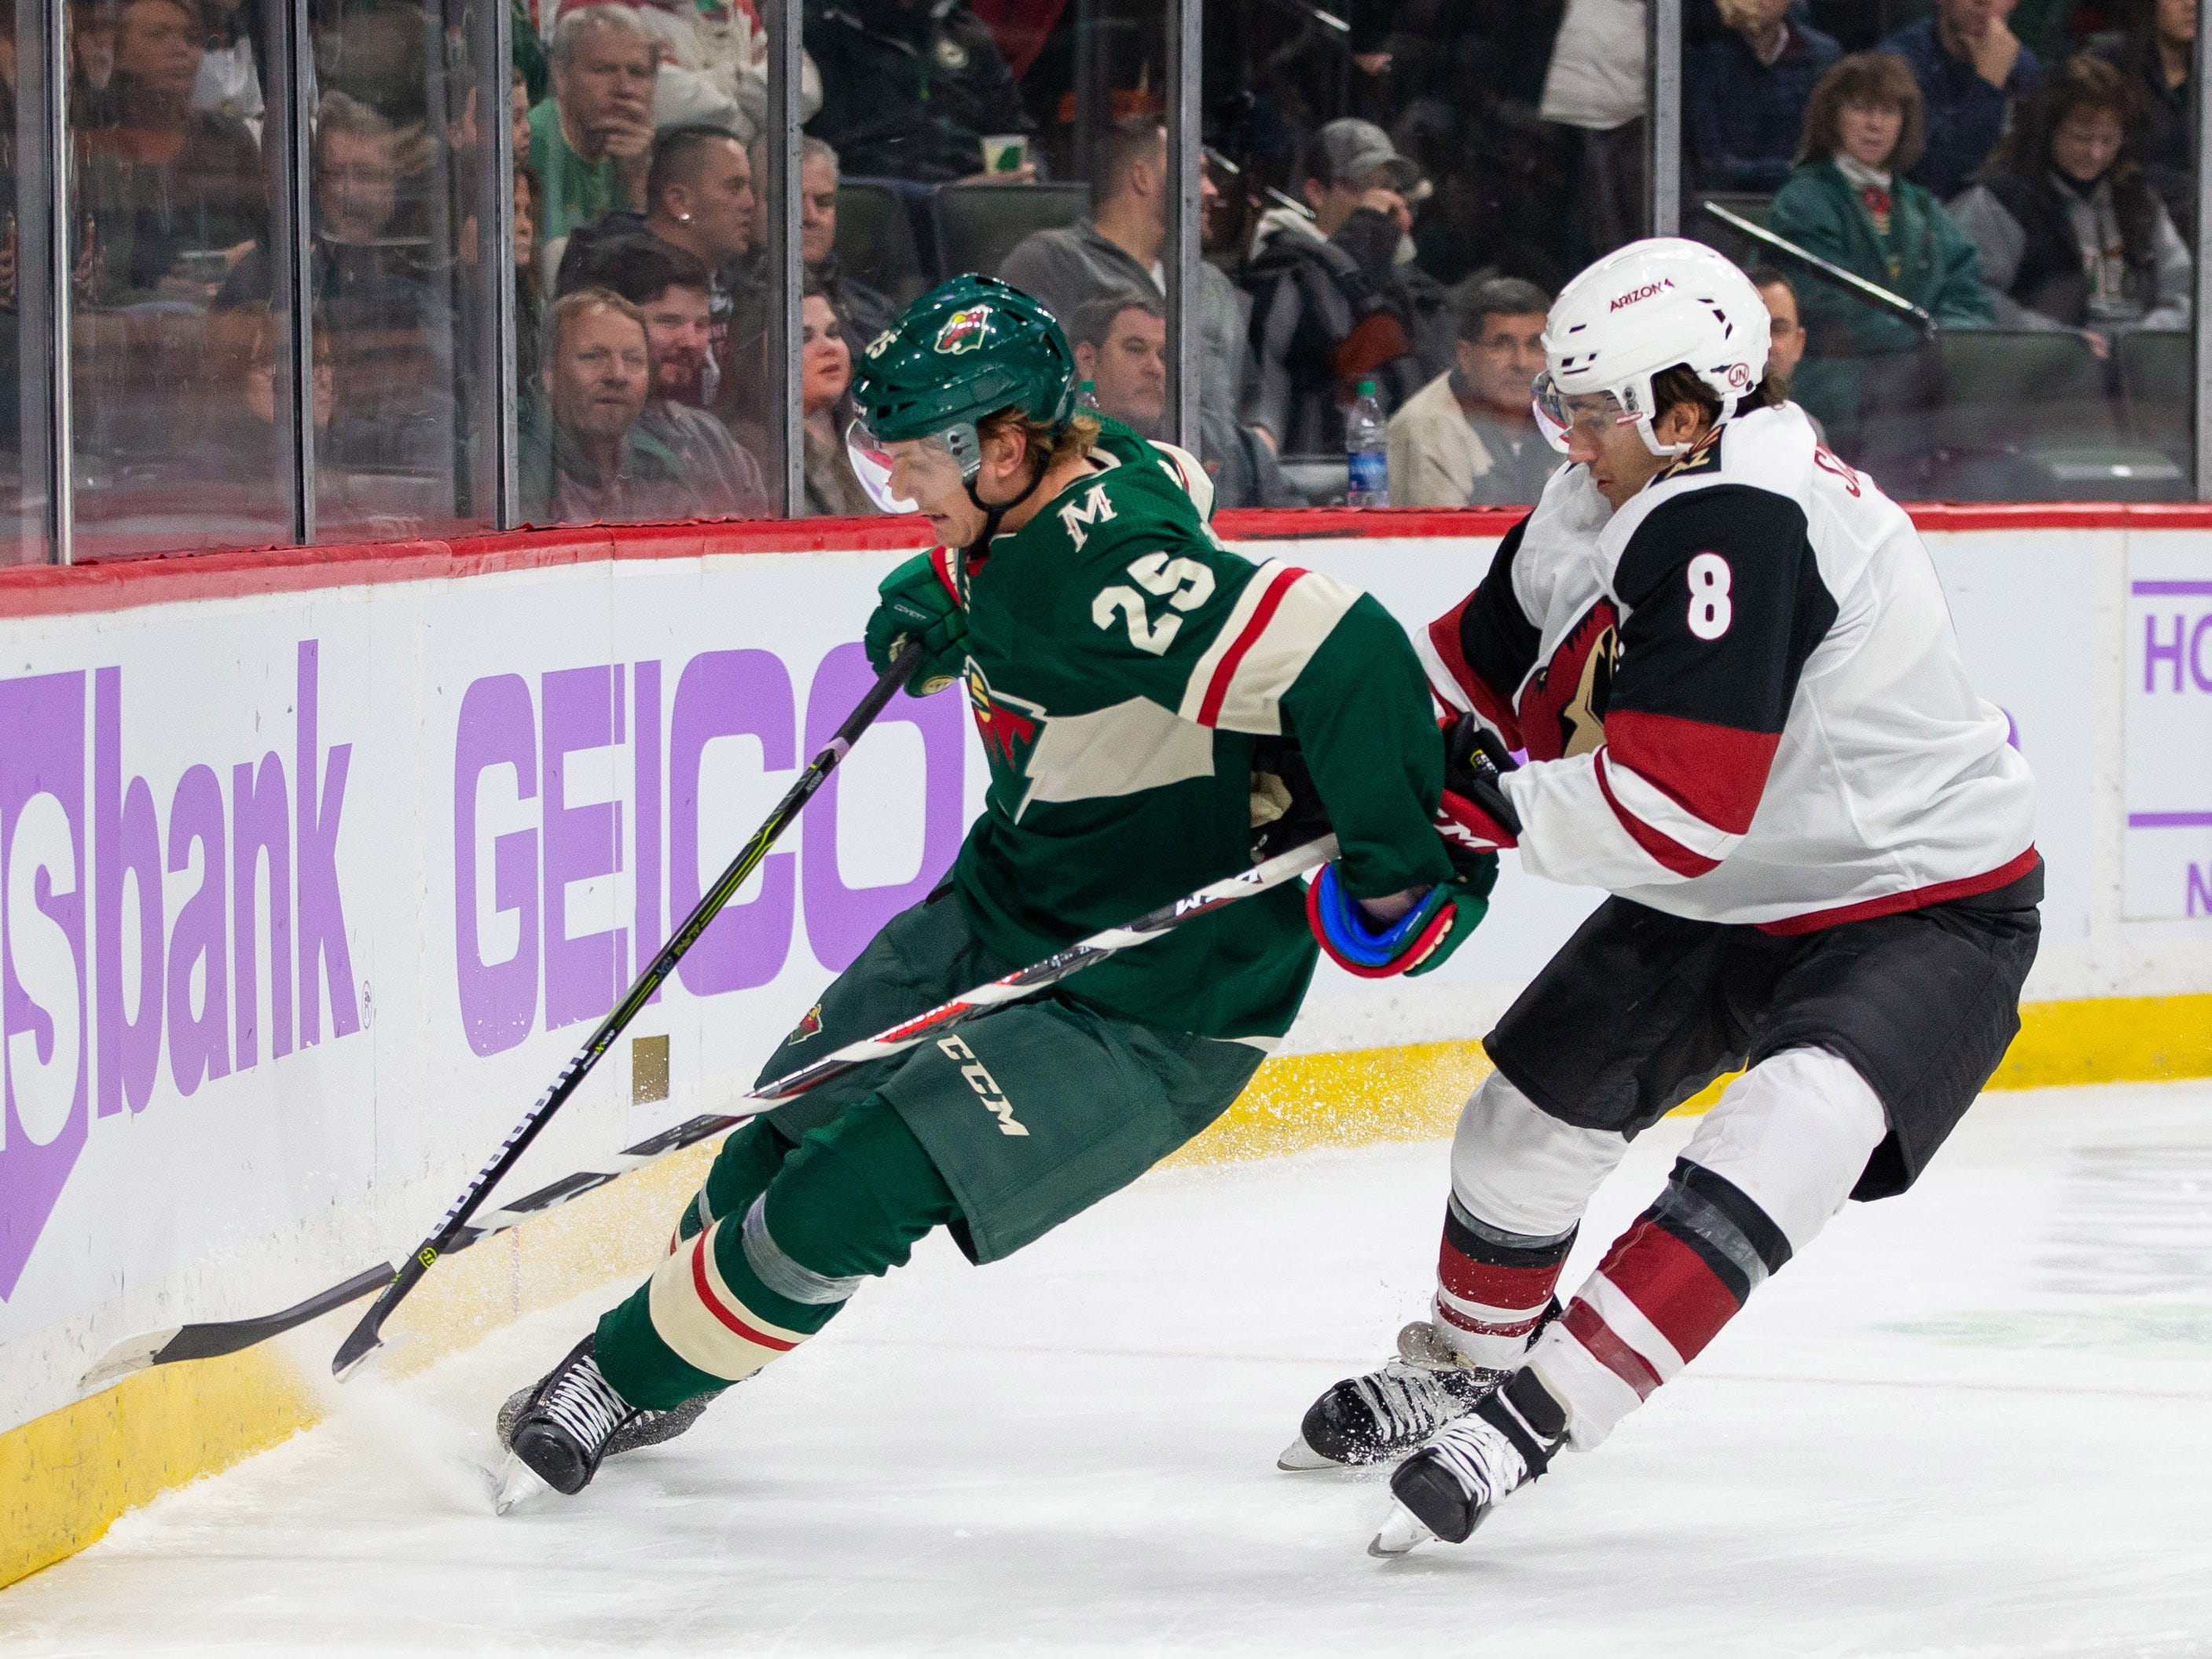 Nov 27, 2018; Saint Paul, MN, USA; Minnesota Wild defenseman Jonas Brodin (25) defends Phoenix Coyotes forward Nick Schmaltz (8) in the first period at Xcel Energy Center. Mandatory Credit: Brad Rempel-USA TODAY Sports